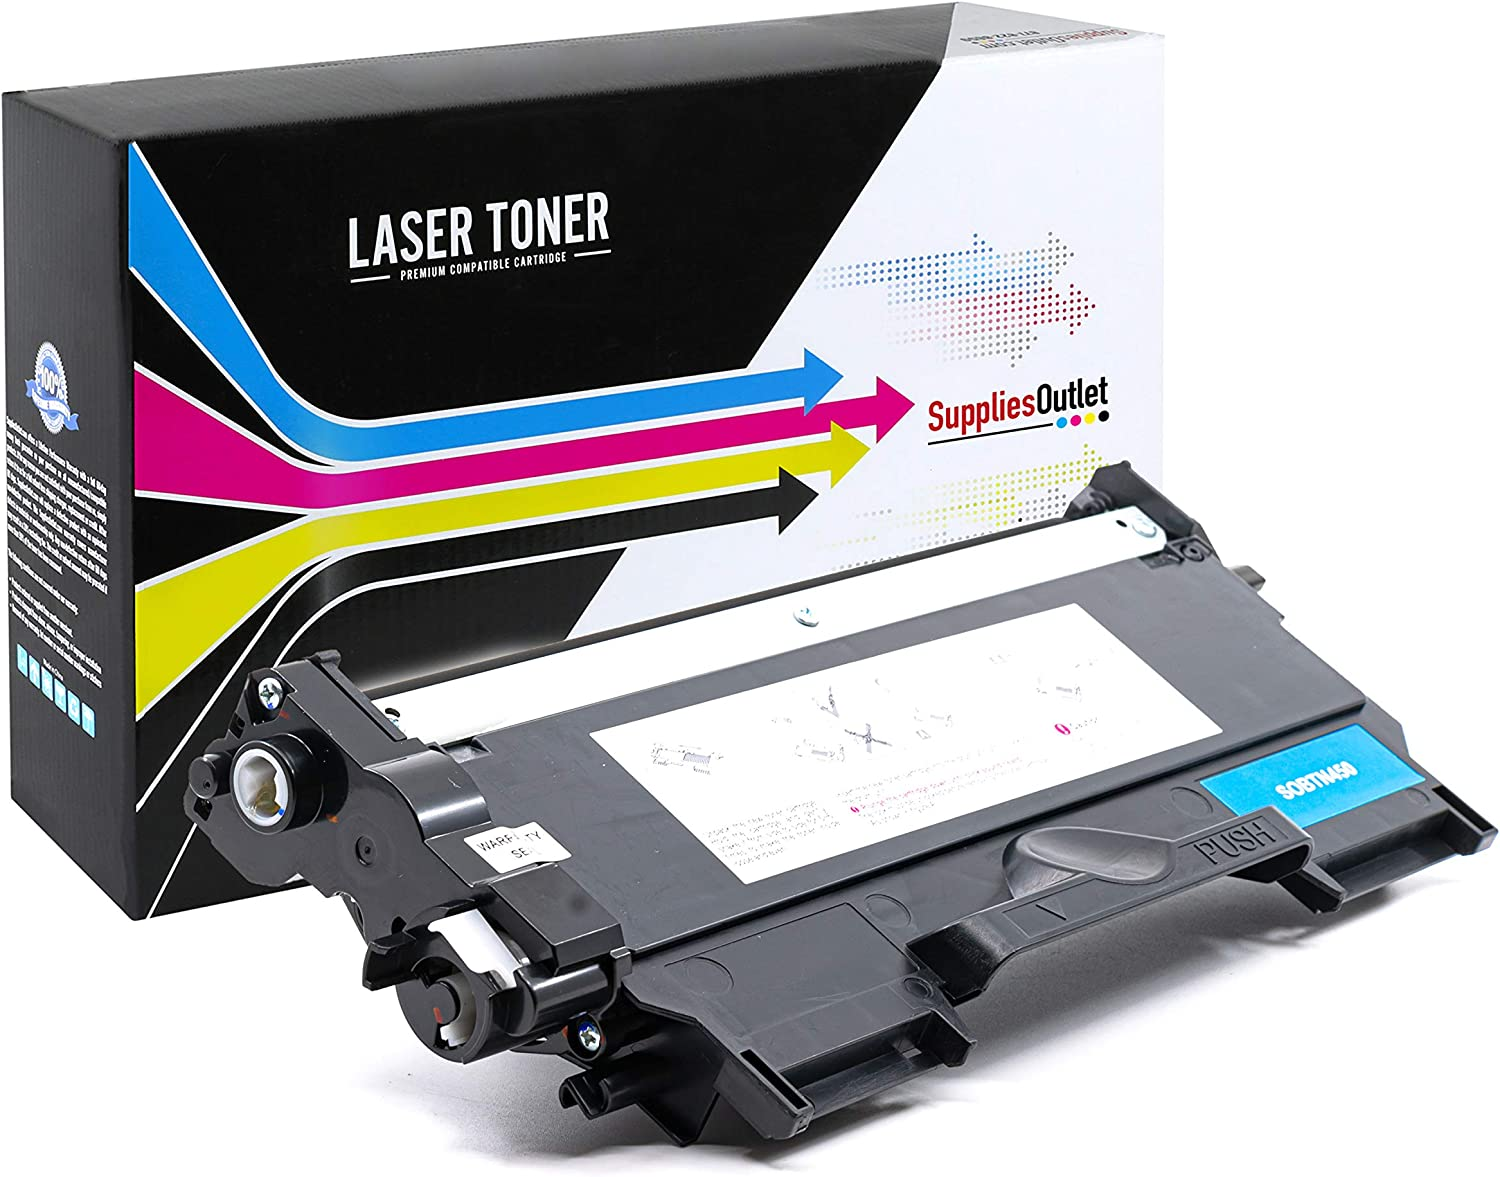 USA Advantage Compatible Toner Cartridge Replacement for Brother TN420 TN-420 Black,1 Pack TN450 TN-450 for Use with MFC-7860DW